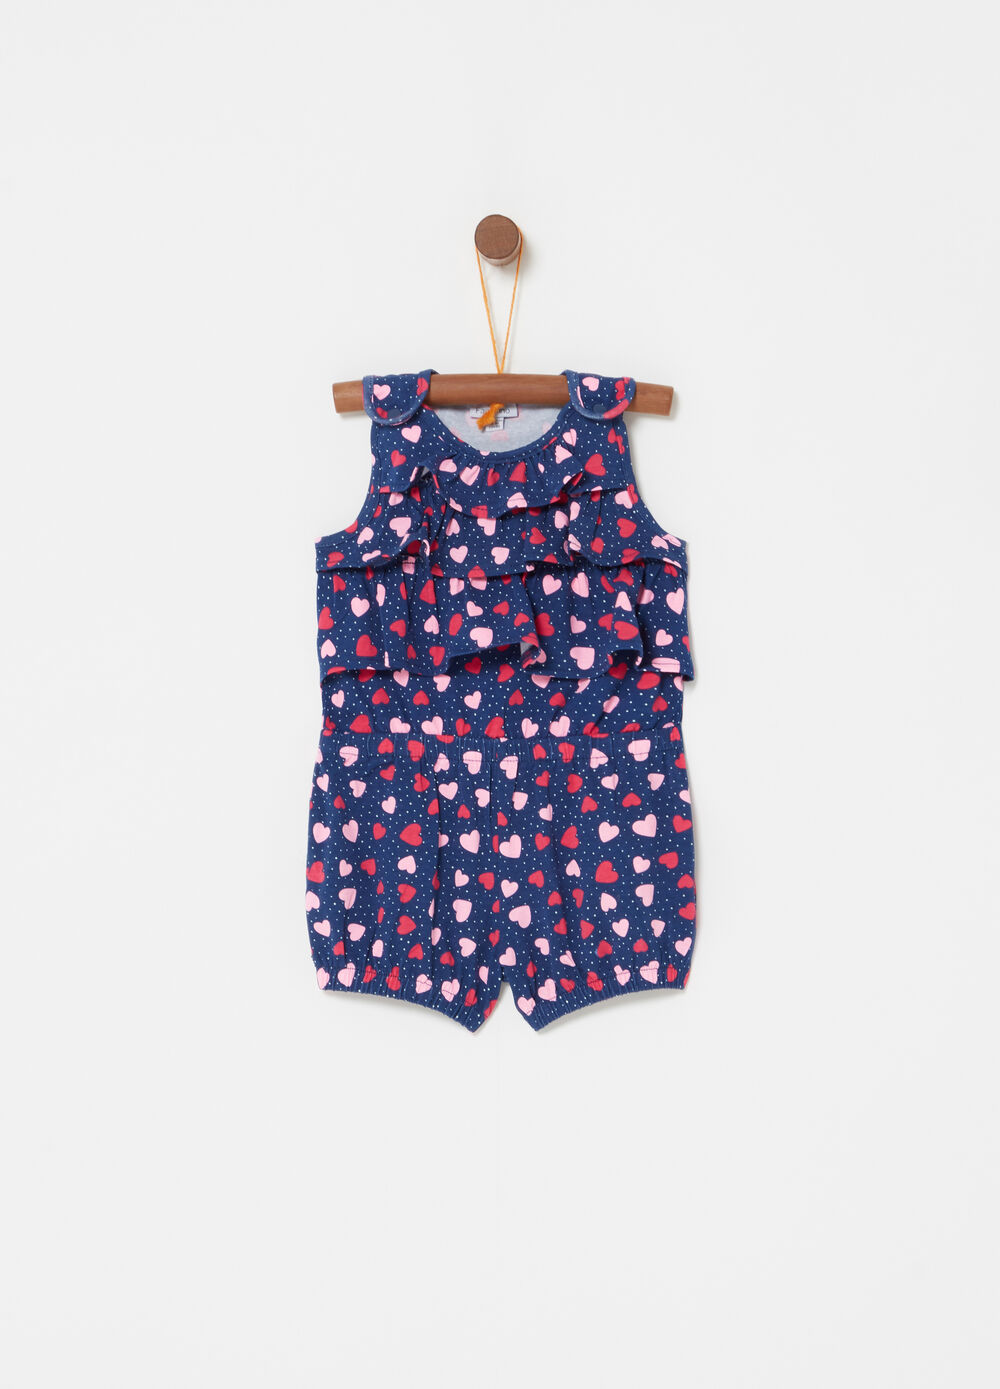 Short onesie with flounce and heart and polka dot pattern